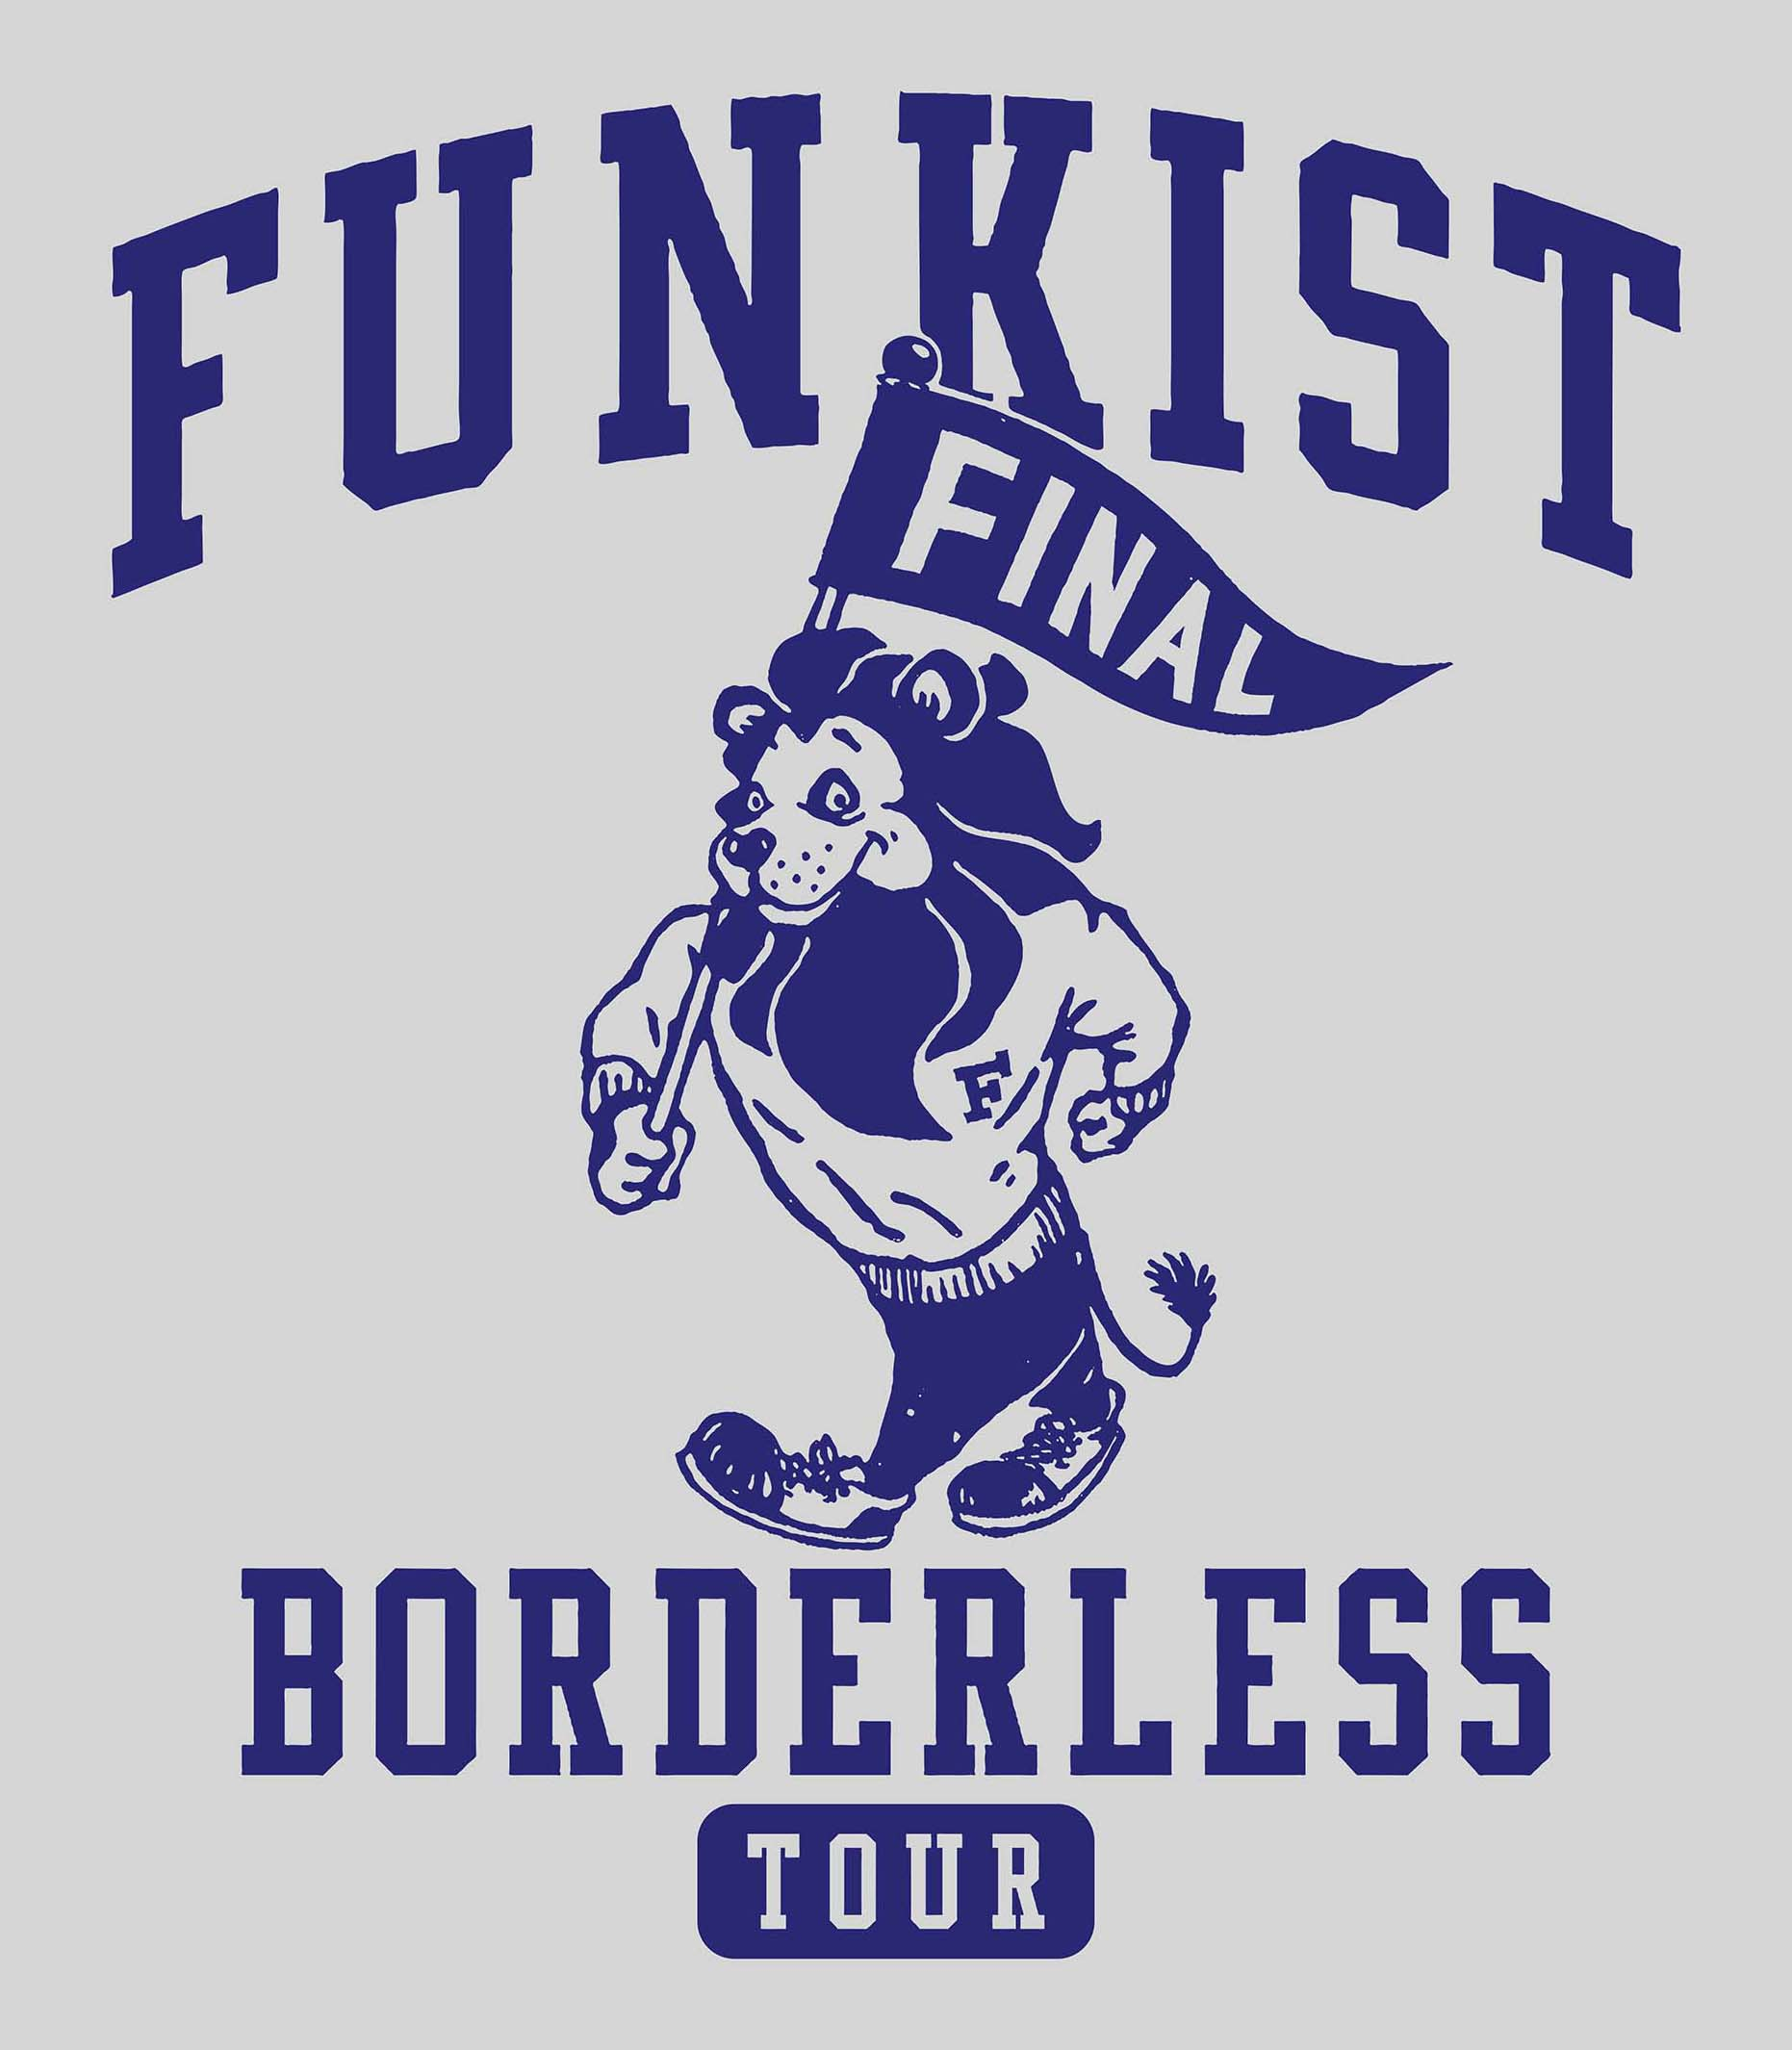 FUNKIST BORDERLESS TOUR FINAL